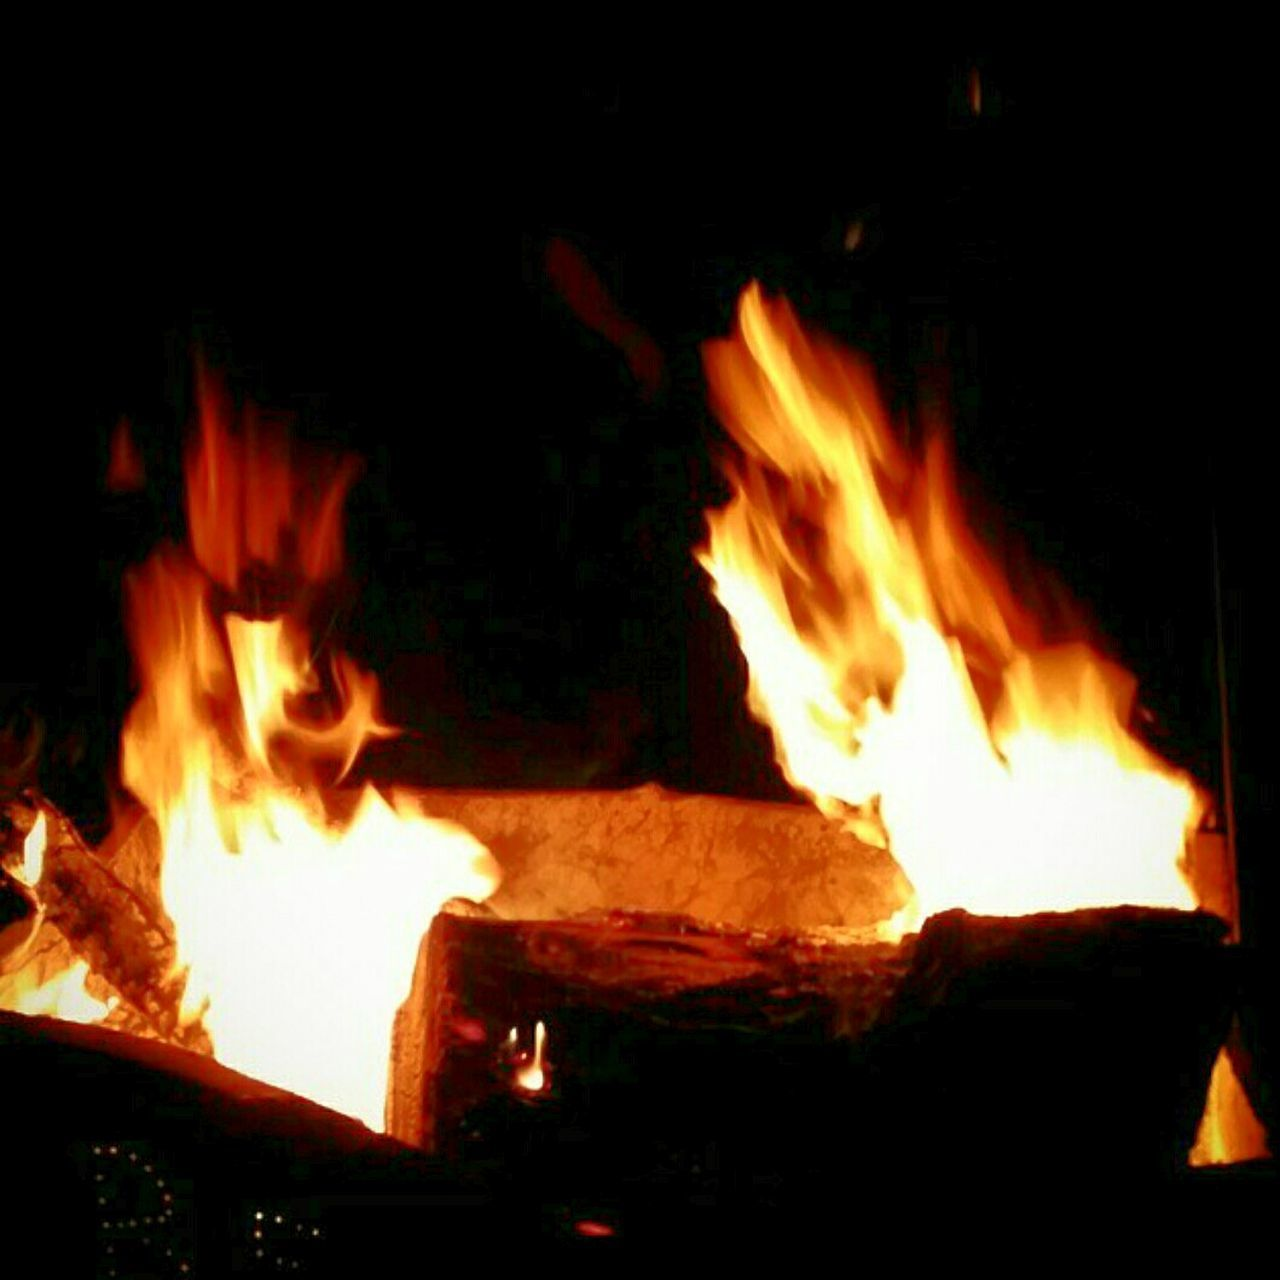 Ending my night with a bombfire. Bombfire EyeEm Best Shots Enjoying Life Eye4photography  California Love Hi! Taking Photos Night Life Nightphotography Nightshot